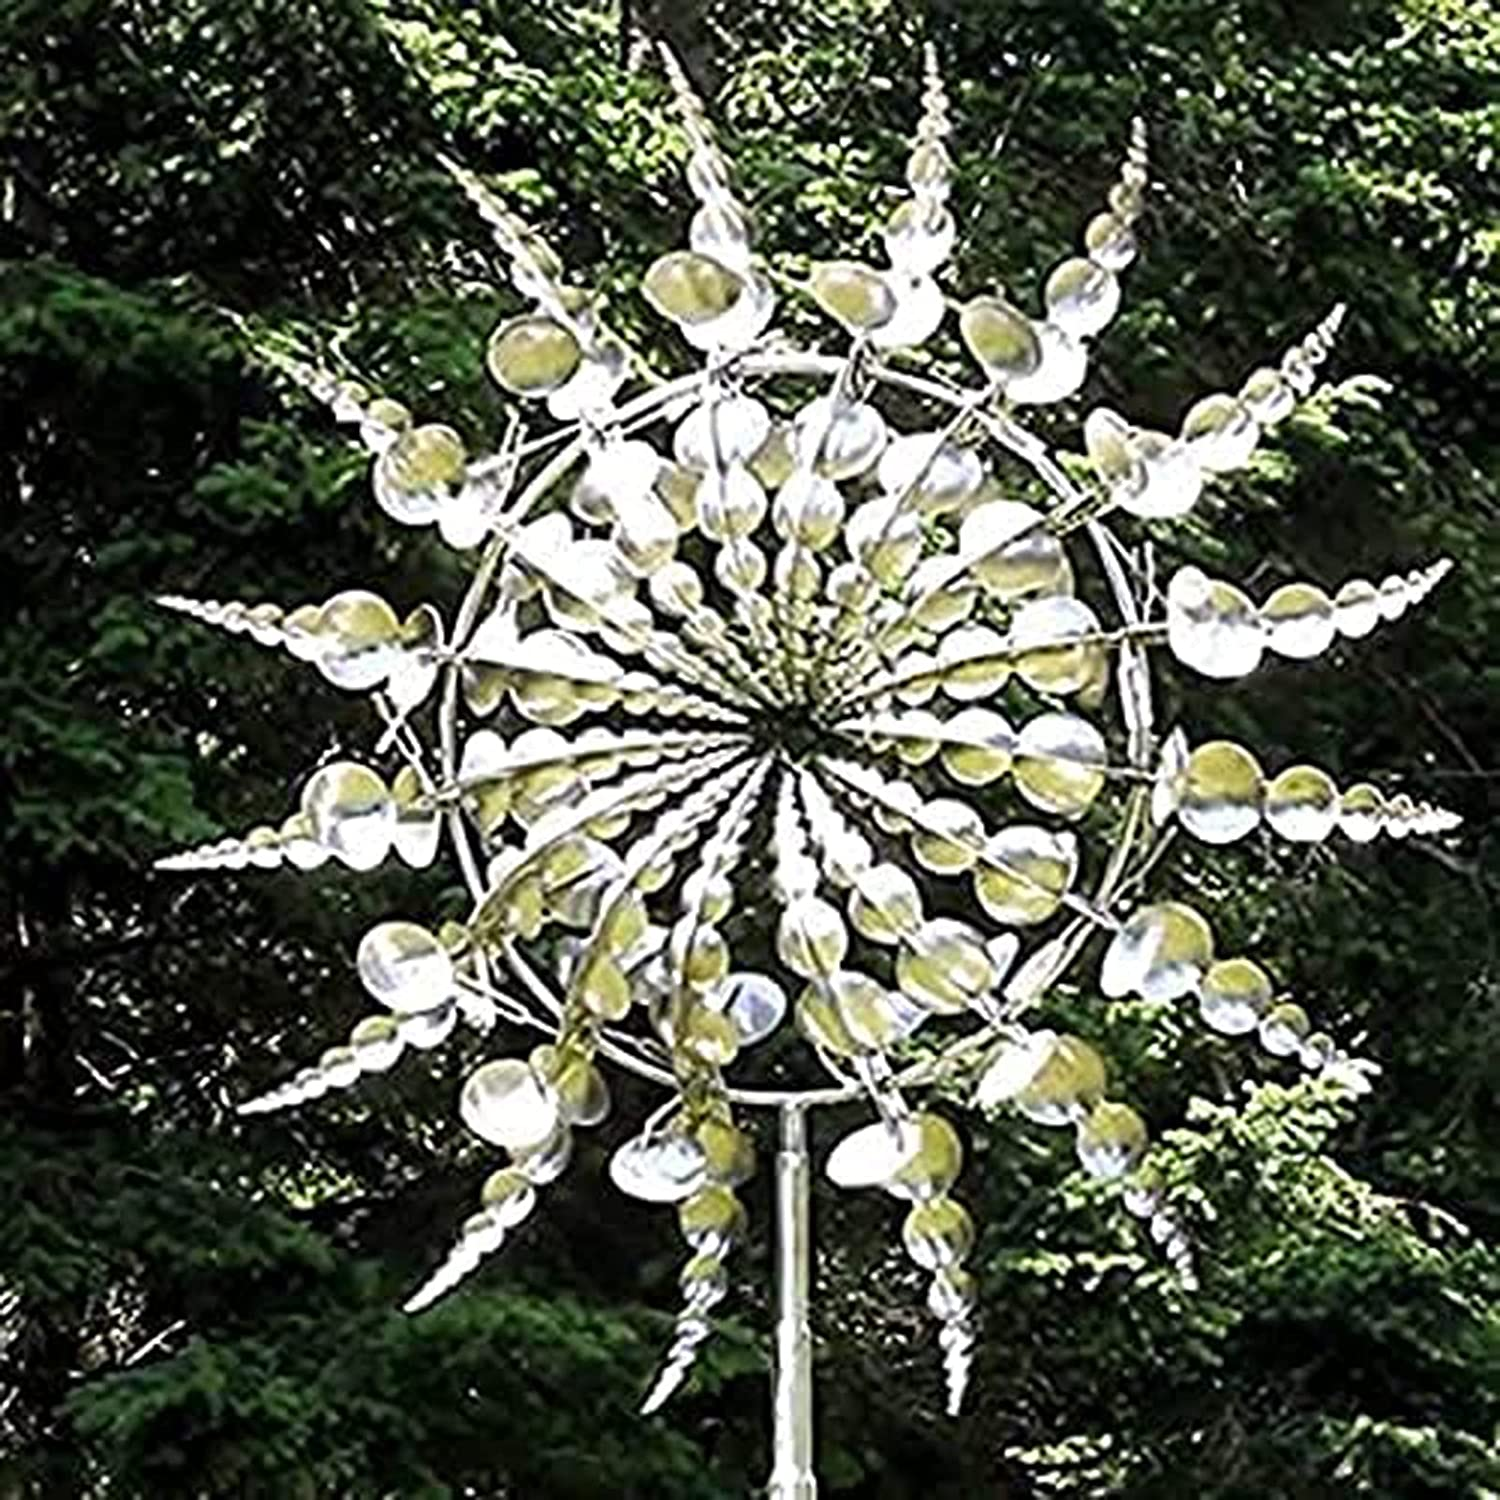 QWBBY Unique Portland Mall and Magical Metal Windmill Catc Solar Spinner Selling selling Wind